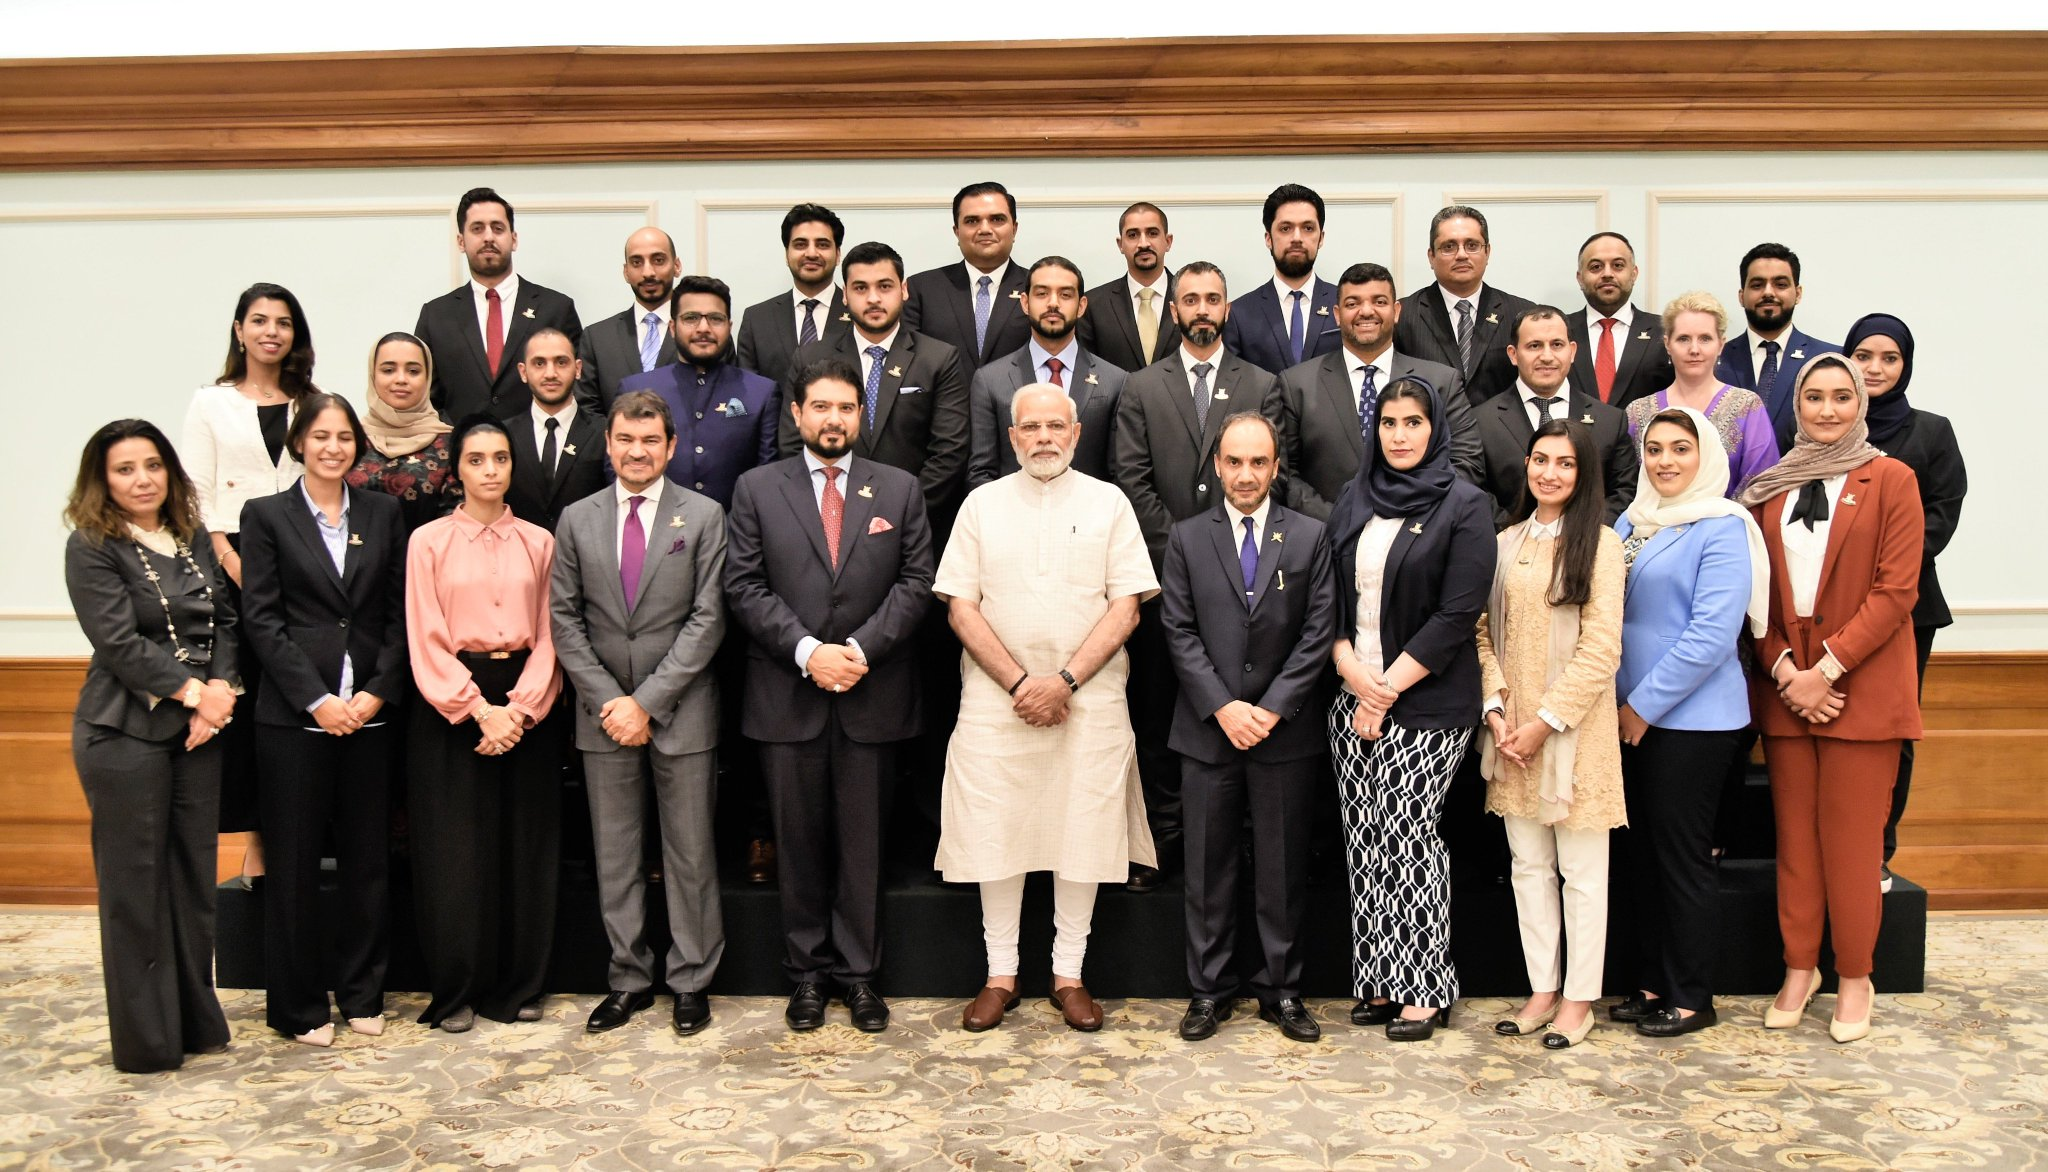 Members of Oman India Joint Business Council meet PM @narendramodi. https://t.co/vCyPYFgVHR https://t.co/0SOkLPPZPb